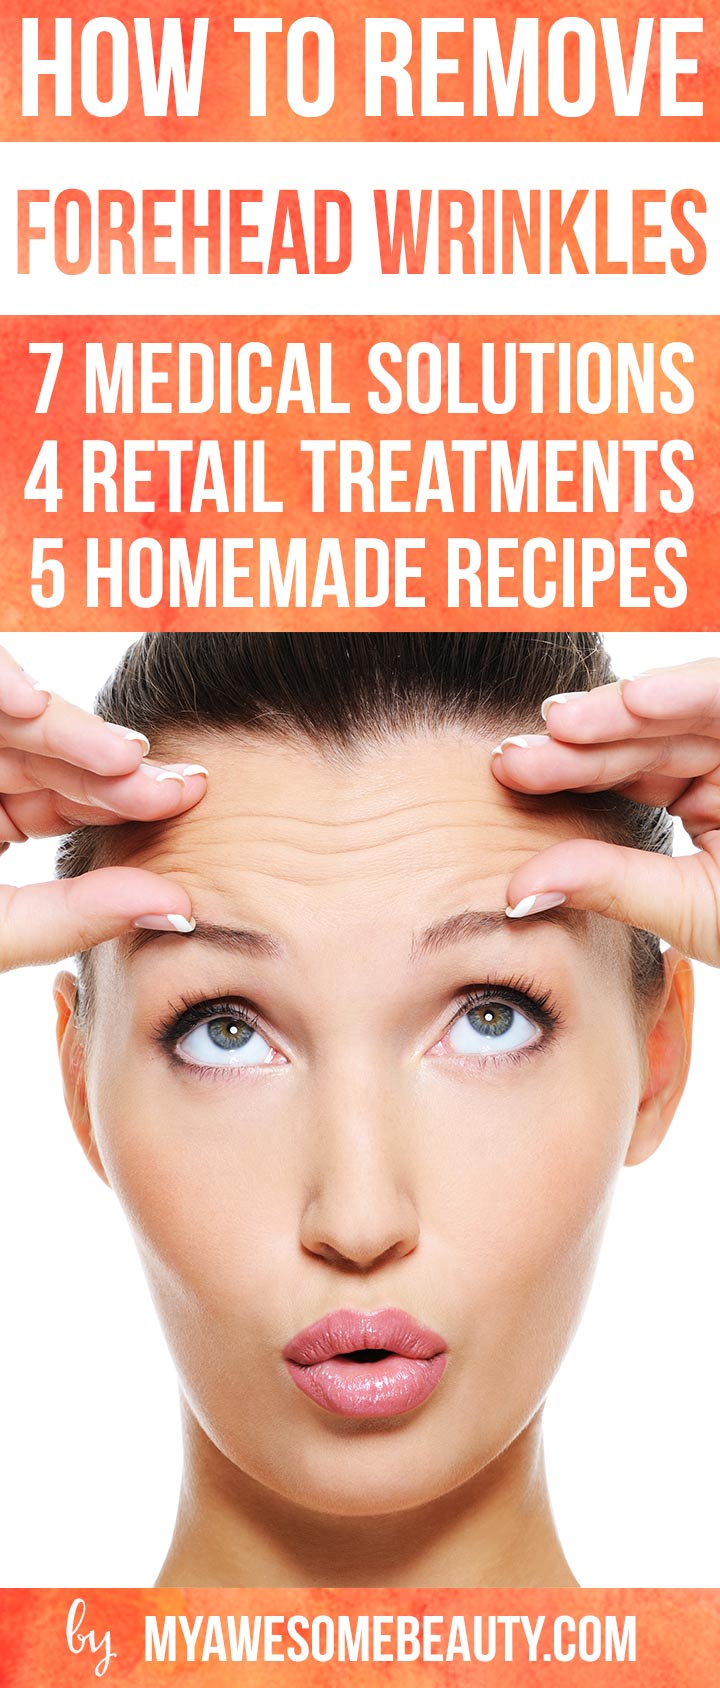 How To Get Rid Of Forehead Wrinkles Fast 16 Methods Treatments